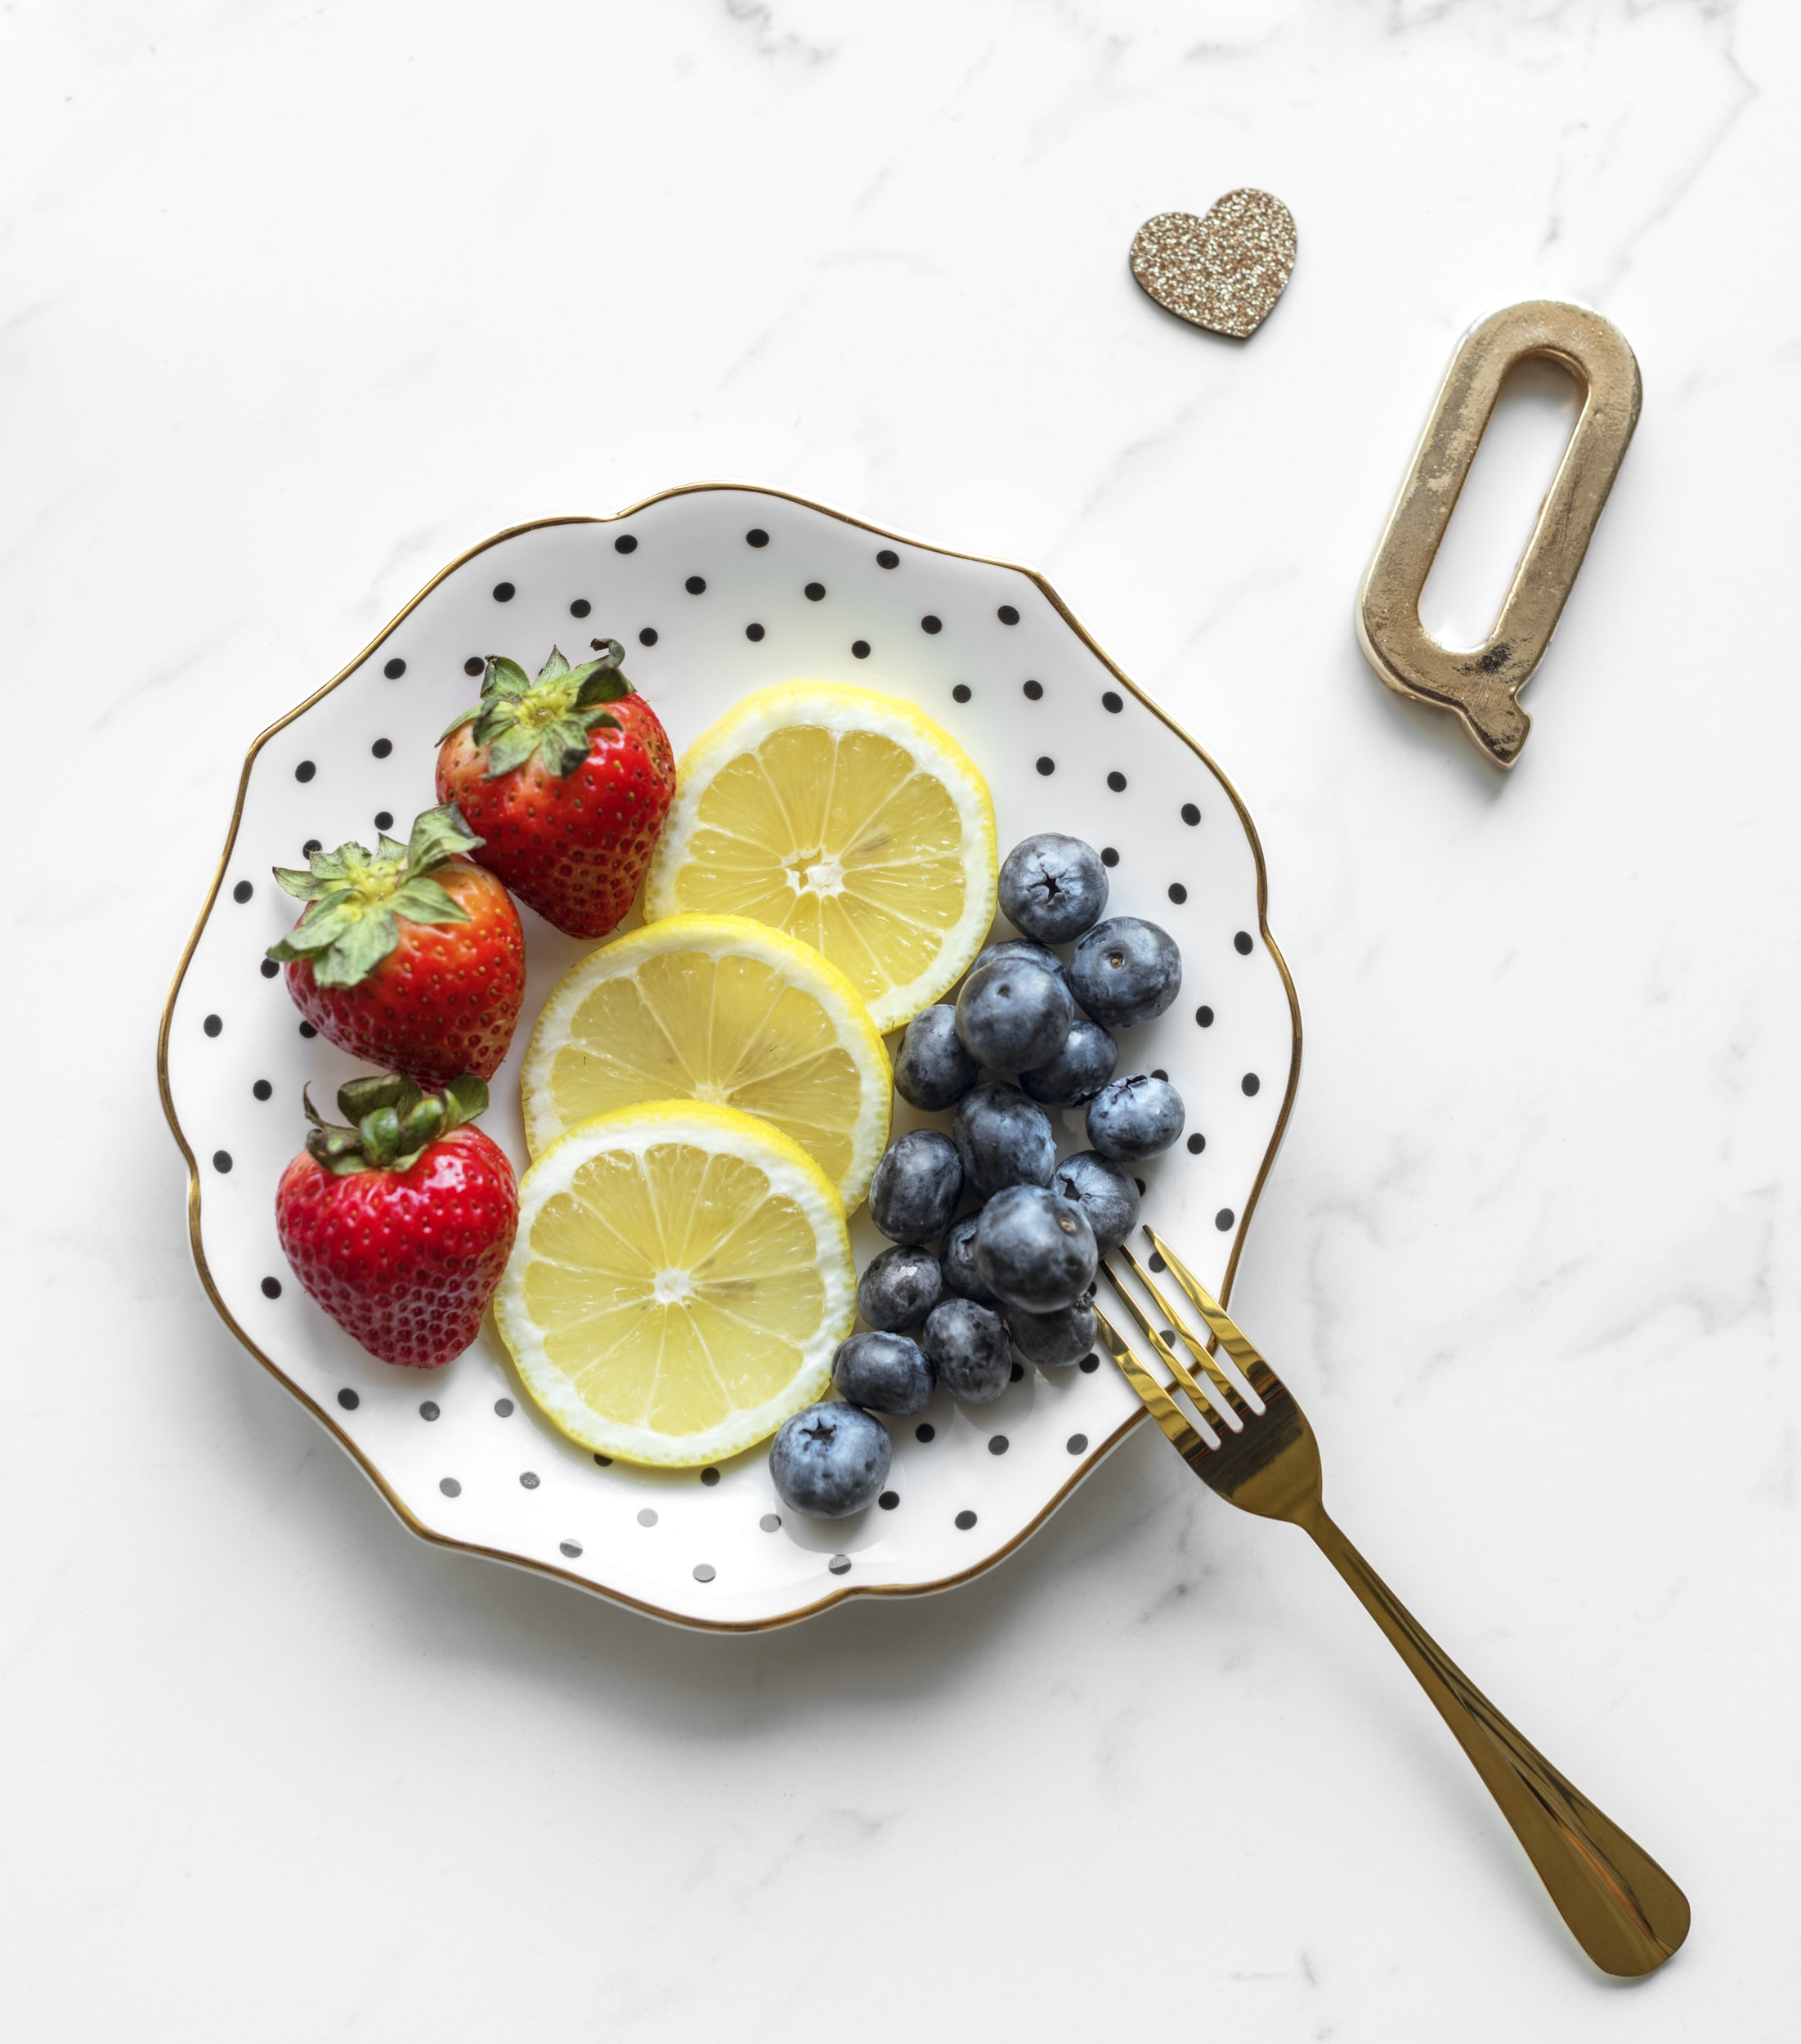 strawberries, blueberries and sliced lemons on round white and black polka-dot ceramic plate